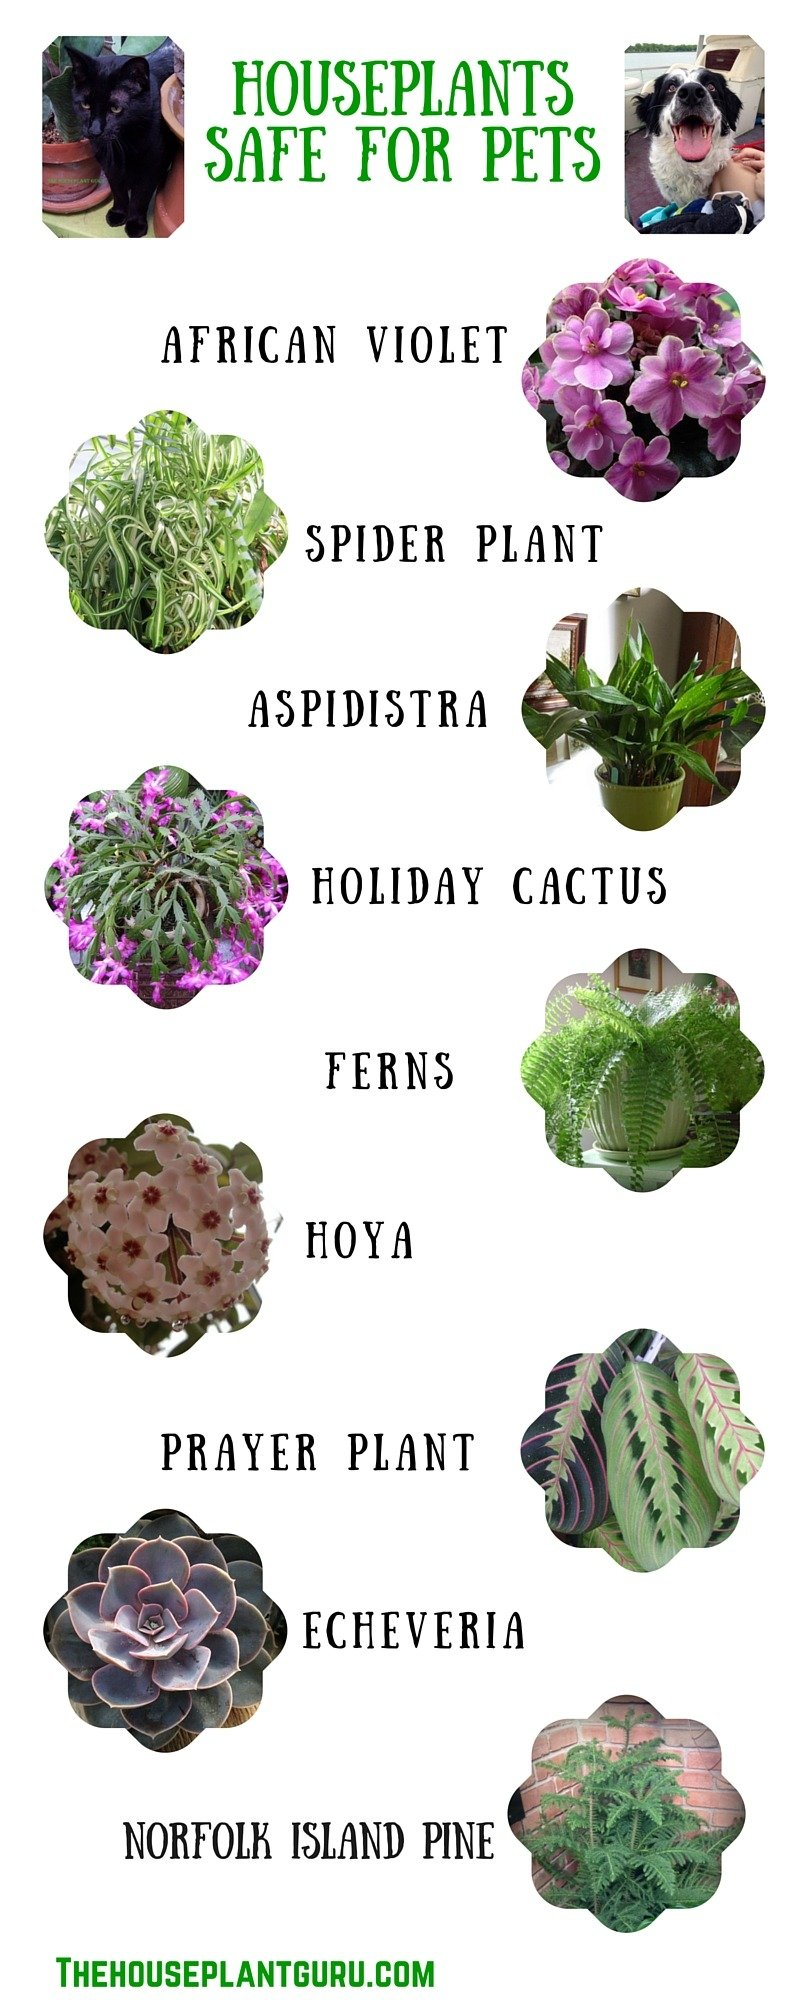 Pet Friendly Houseplants 3